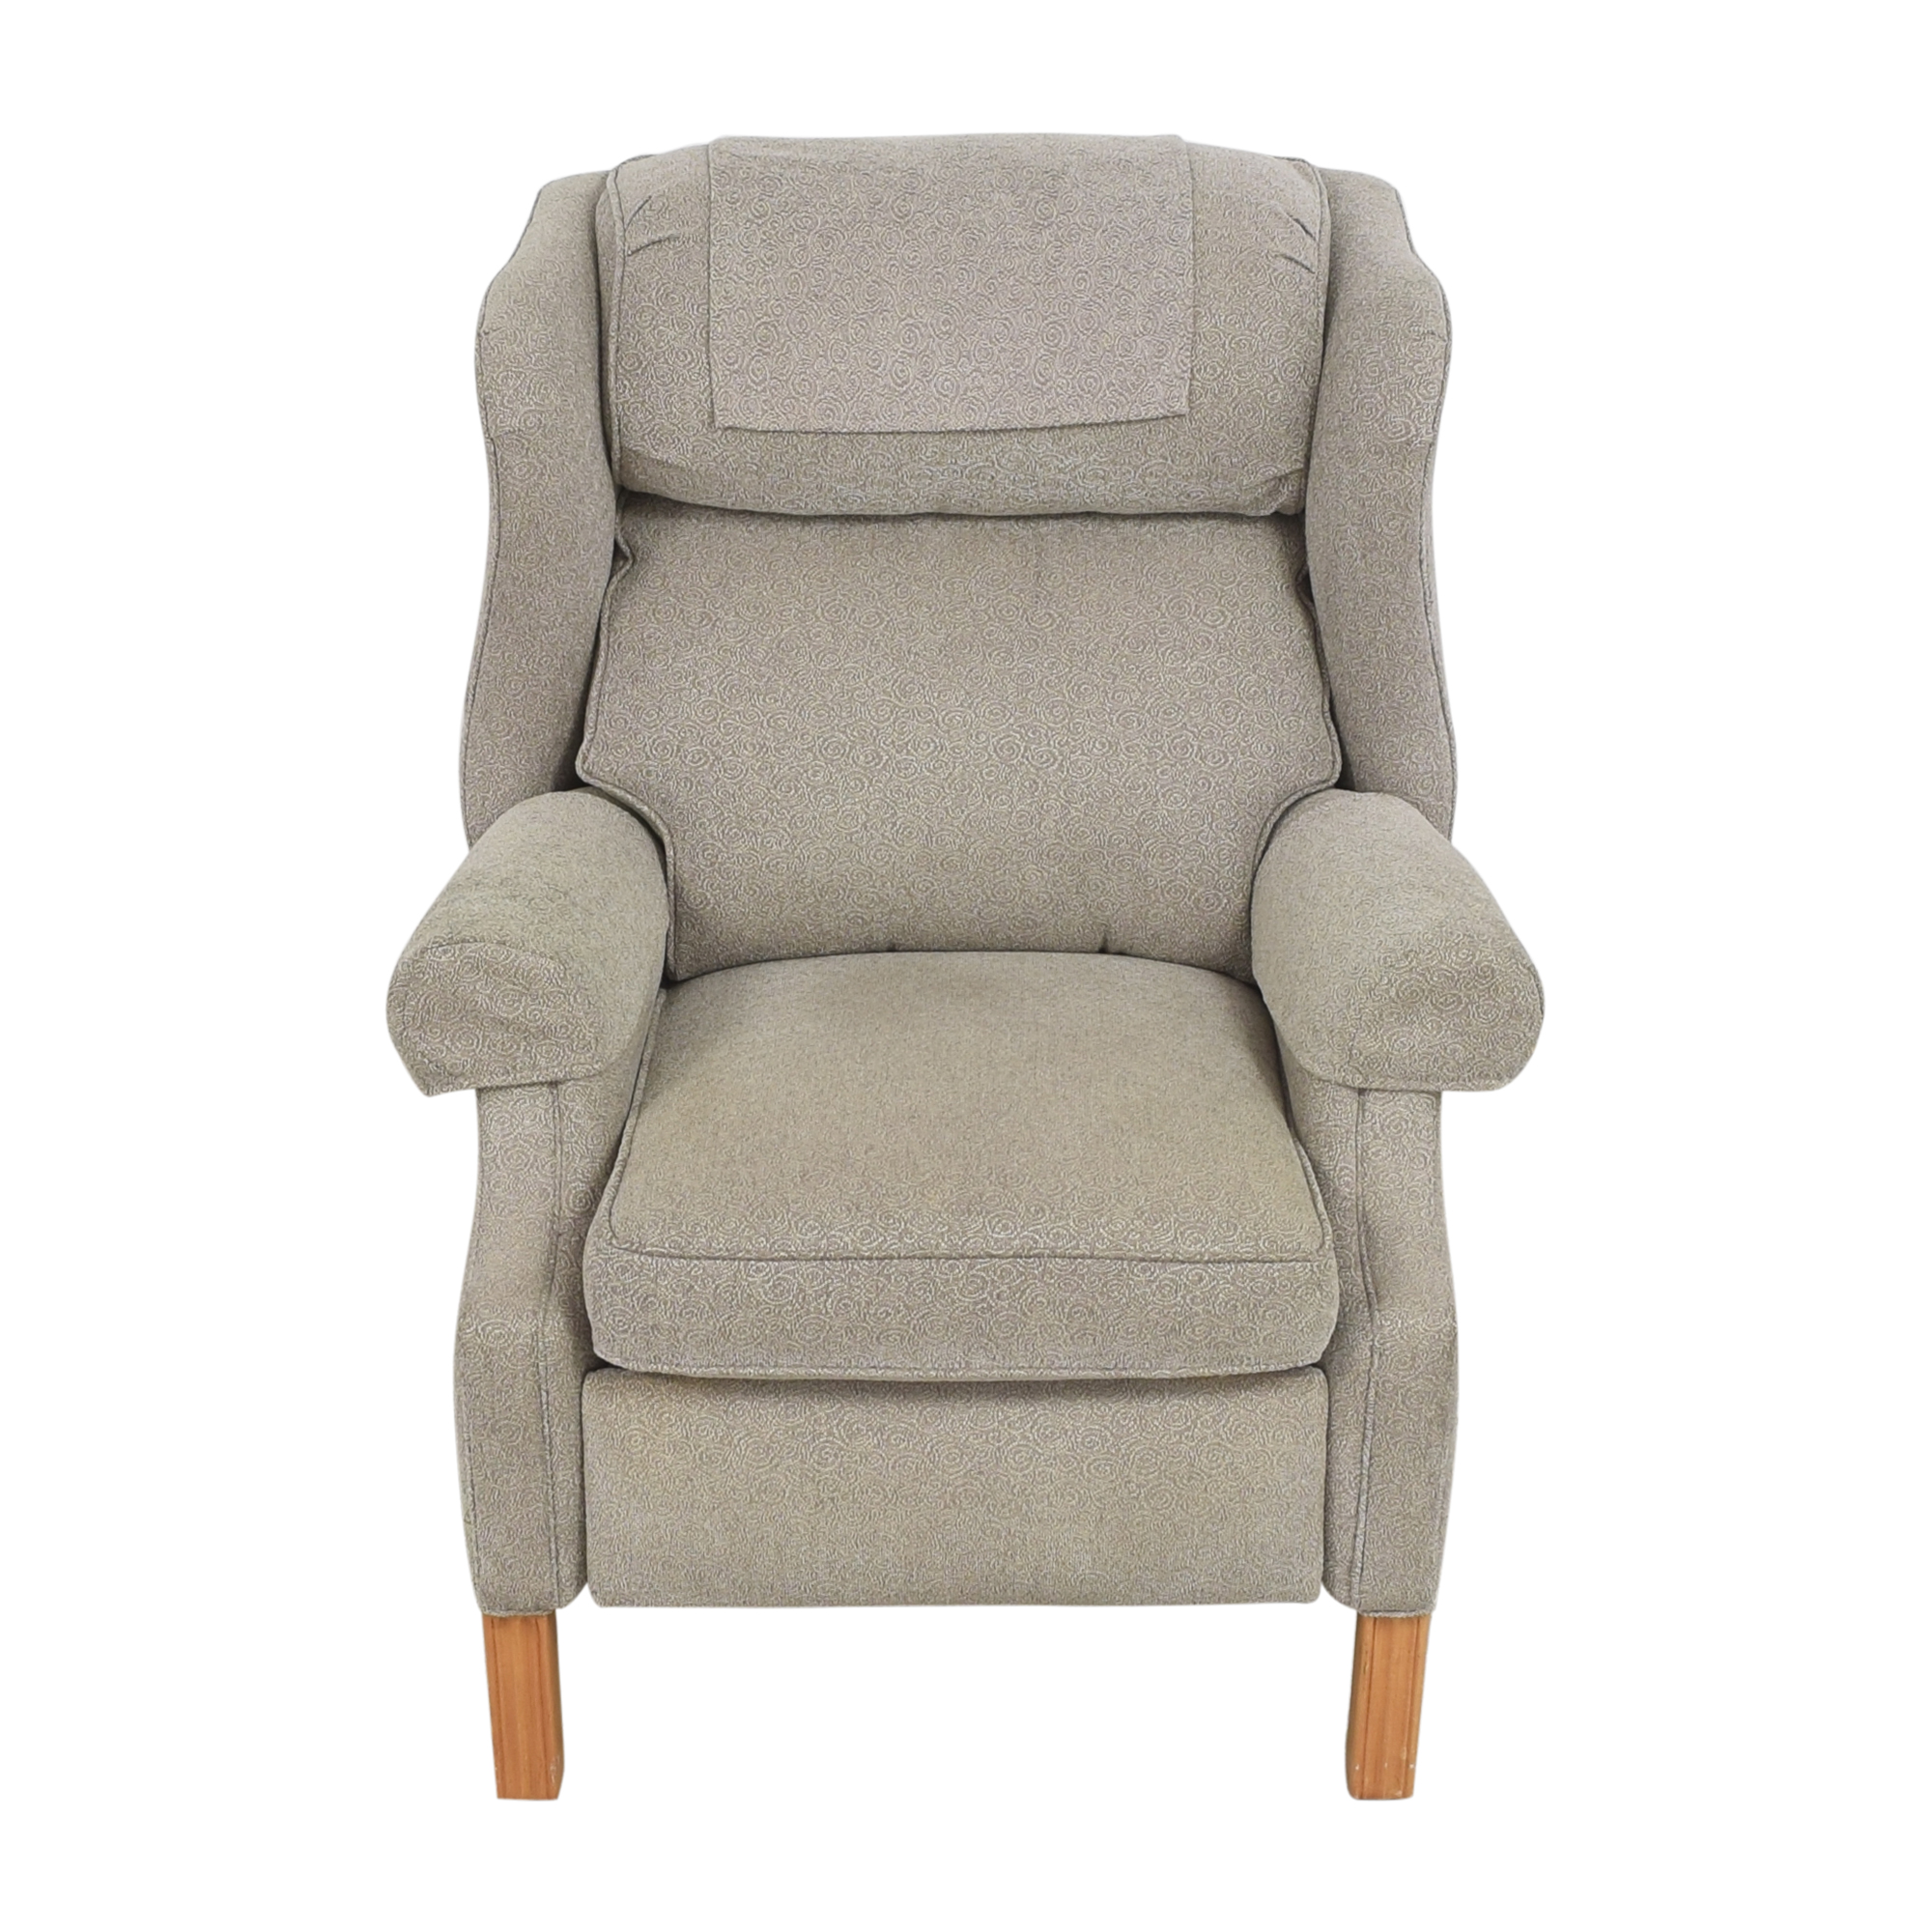 Ethan Allen Townsend Recliner / Chairs